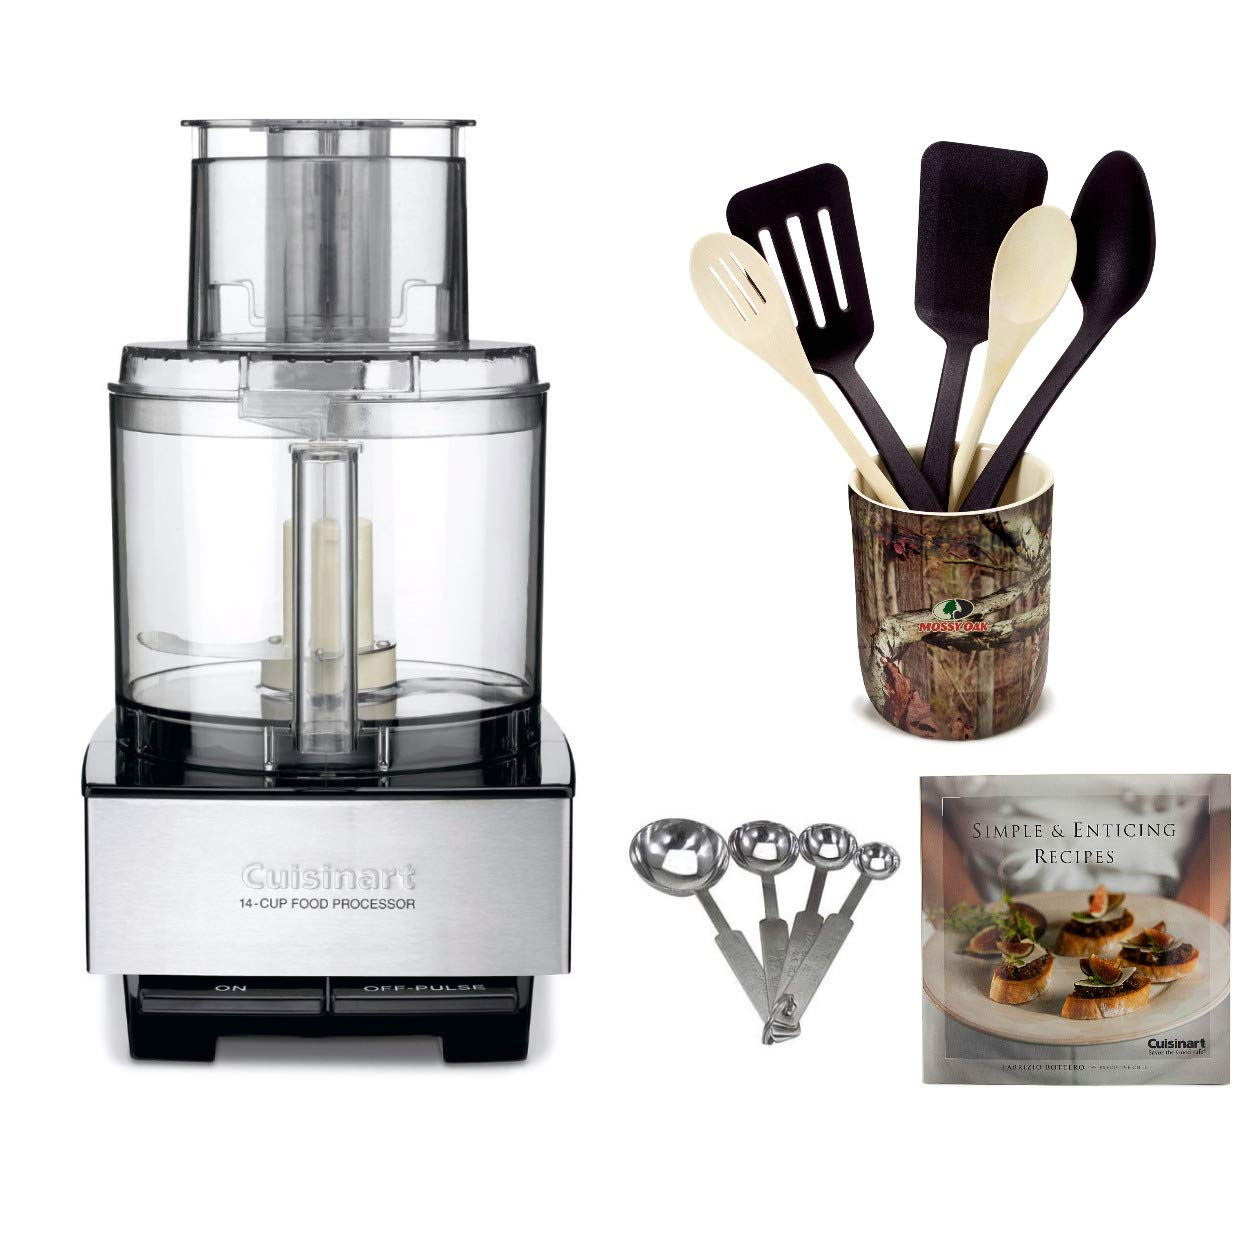 Cuisinart DFP-14BCNY 14-Cup Food Processor, Brushed Stainless Steel Includes 6 Piece Crock Set, Stainless Steal Measuring Spoons and Cookbooks